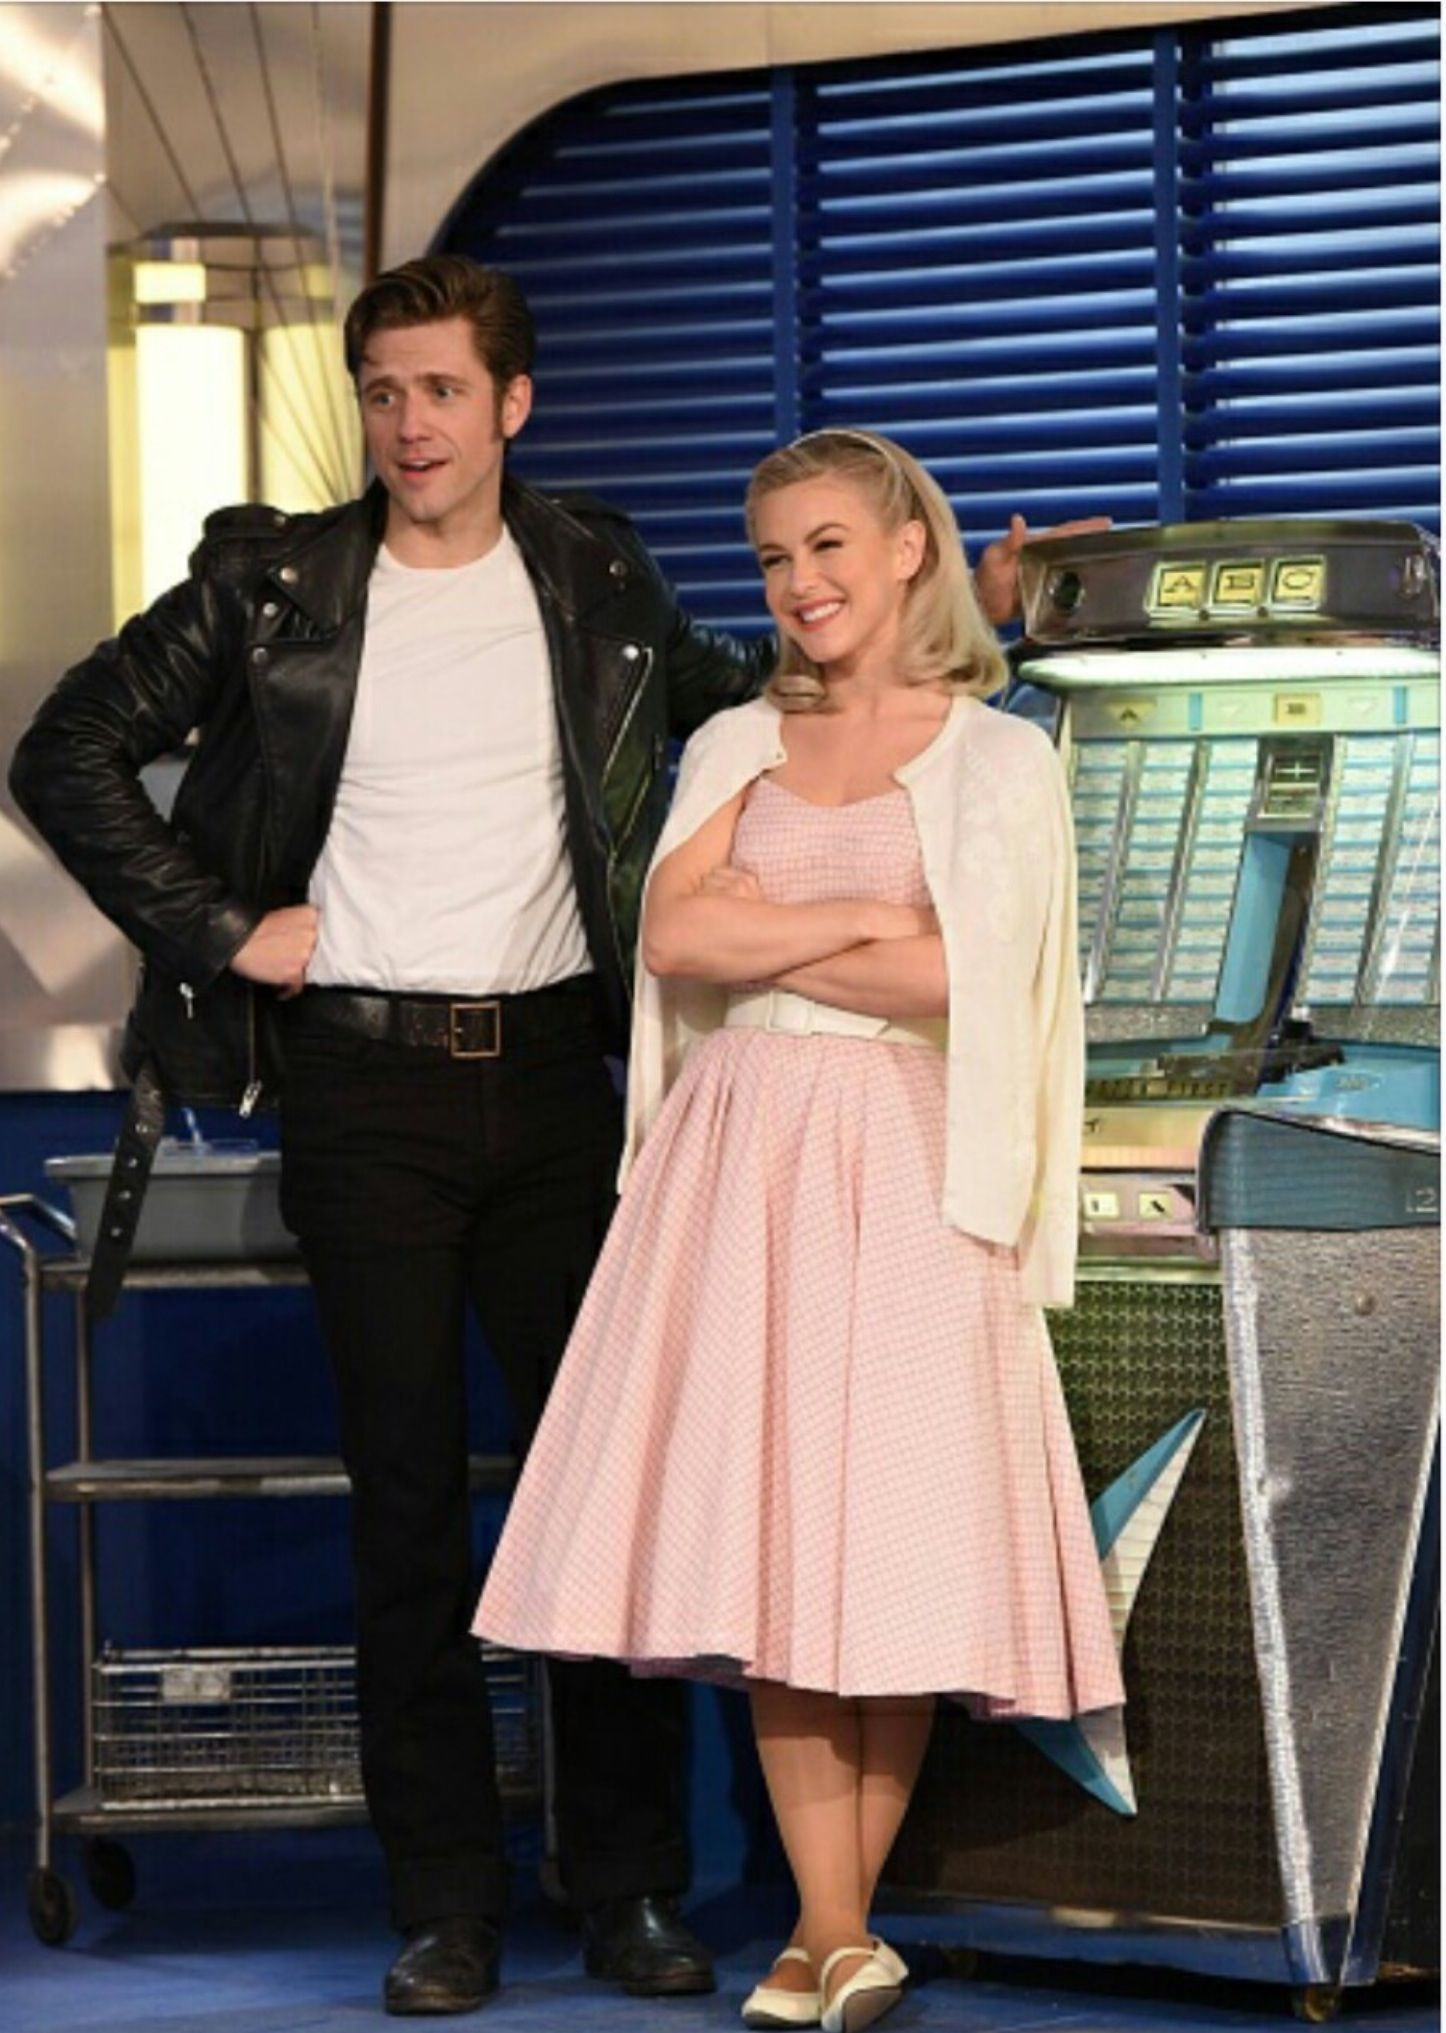 Aaron Tveit Amp Julianne Hough Musicals Grease Halloween